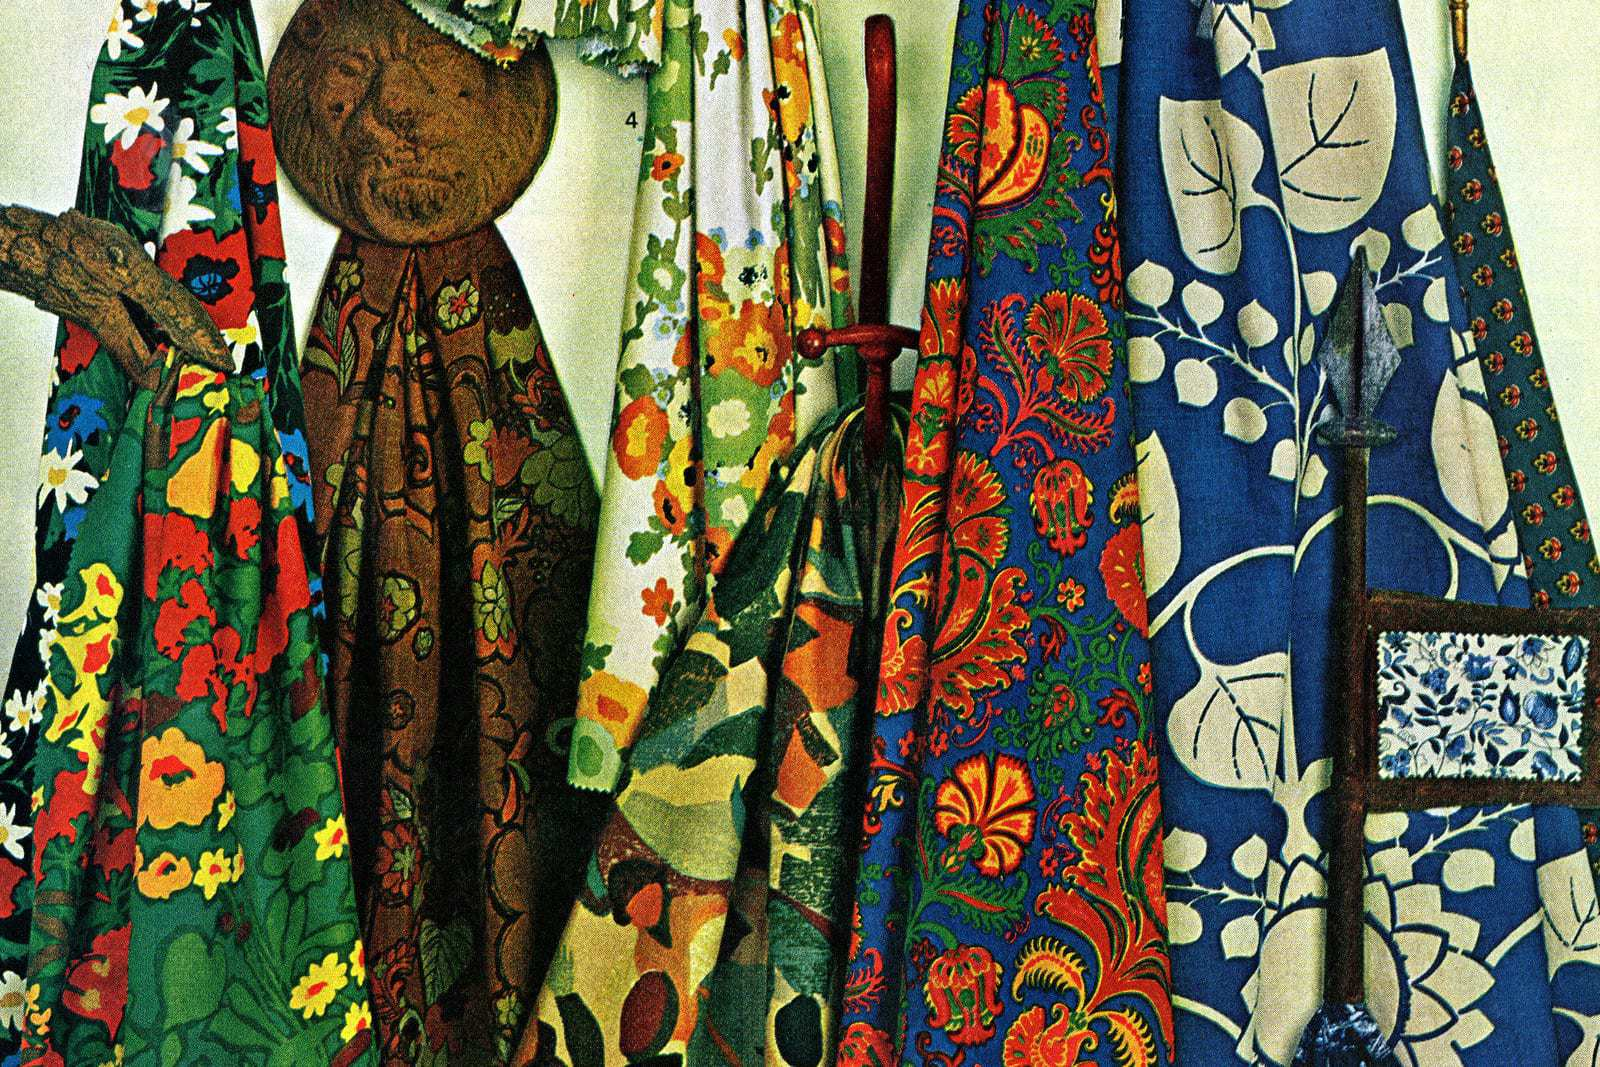 Vintage 1960s home decorating fabric